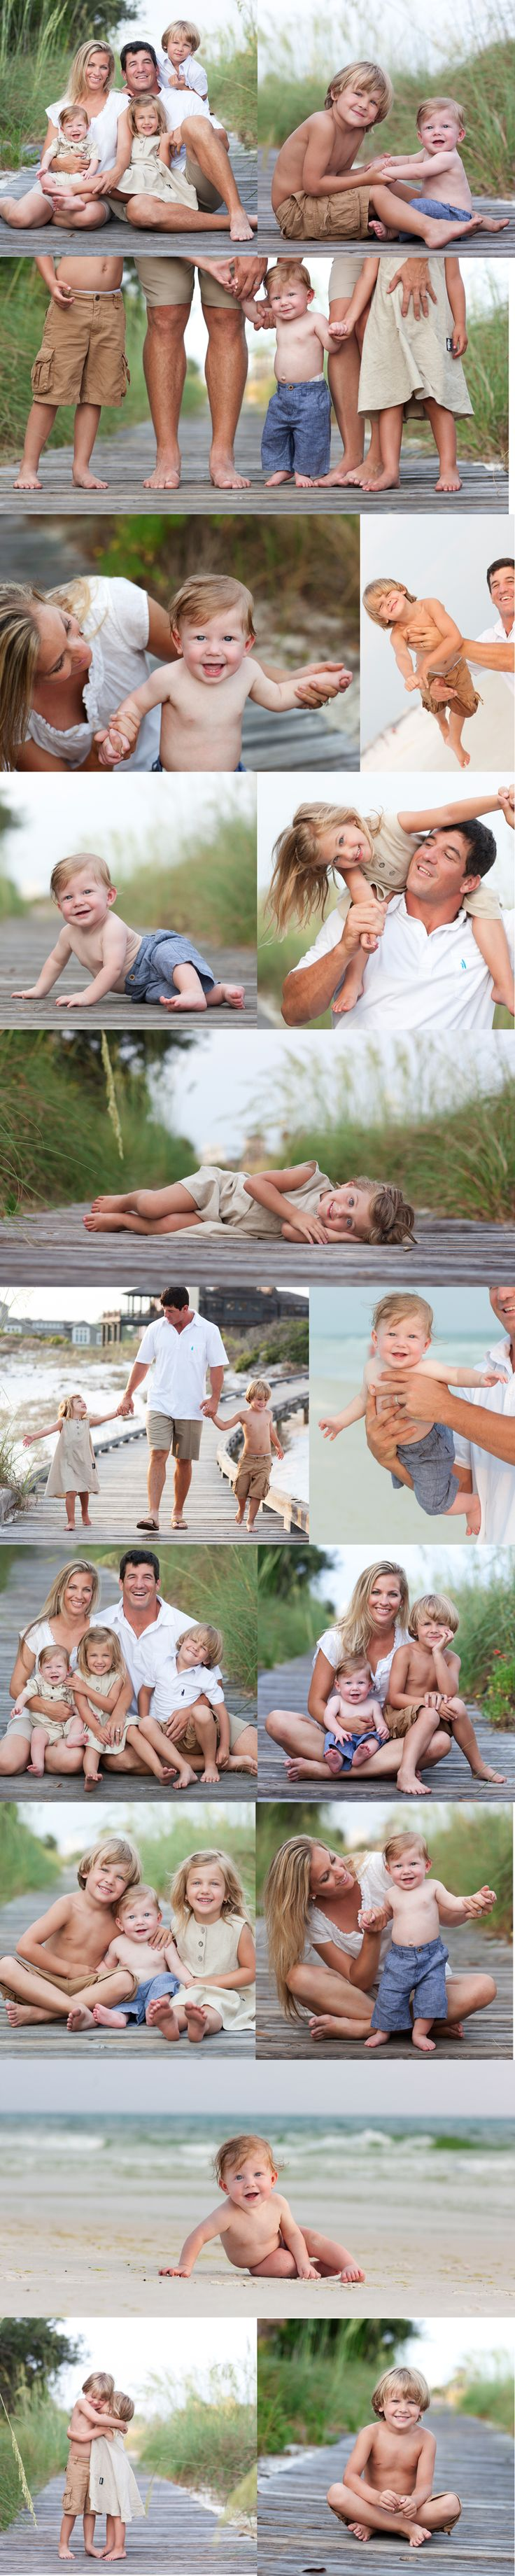 Adorable beach family shots I so want to take a family picture like these one day